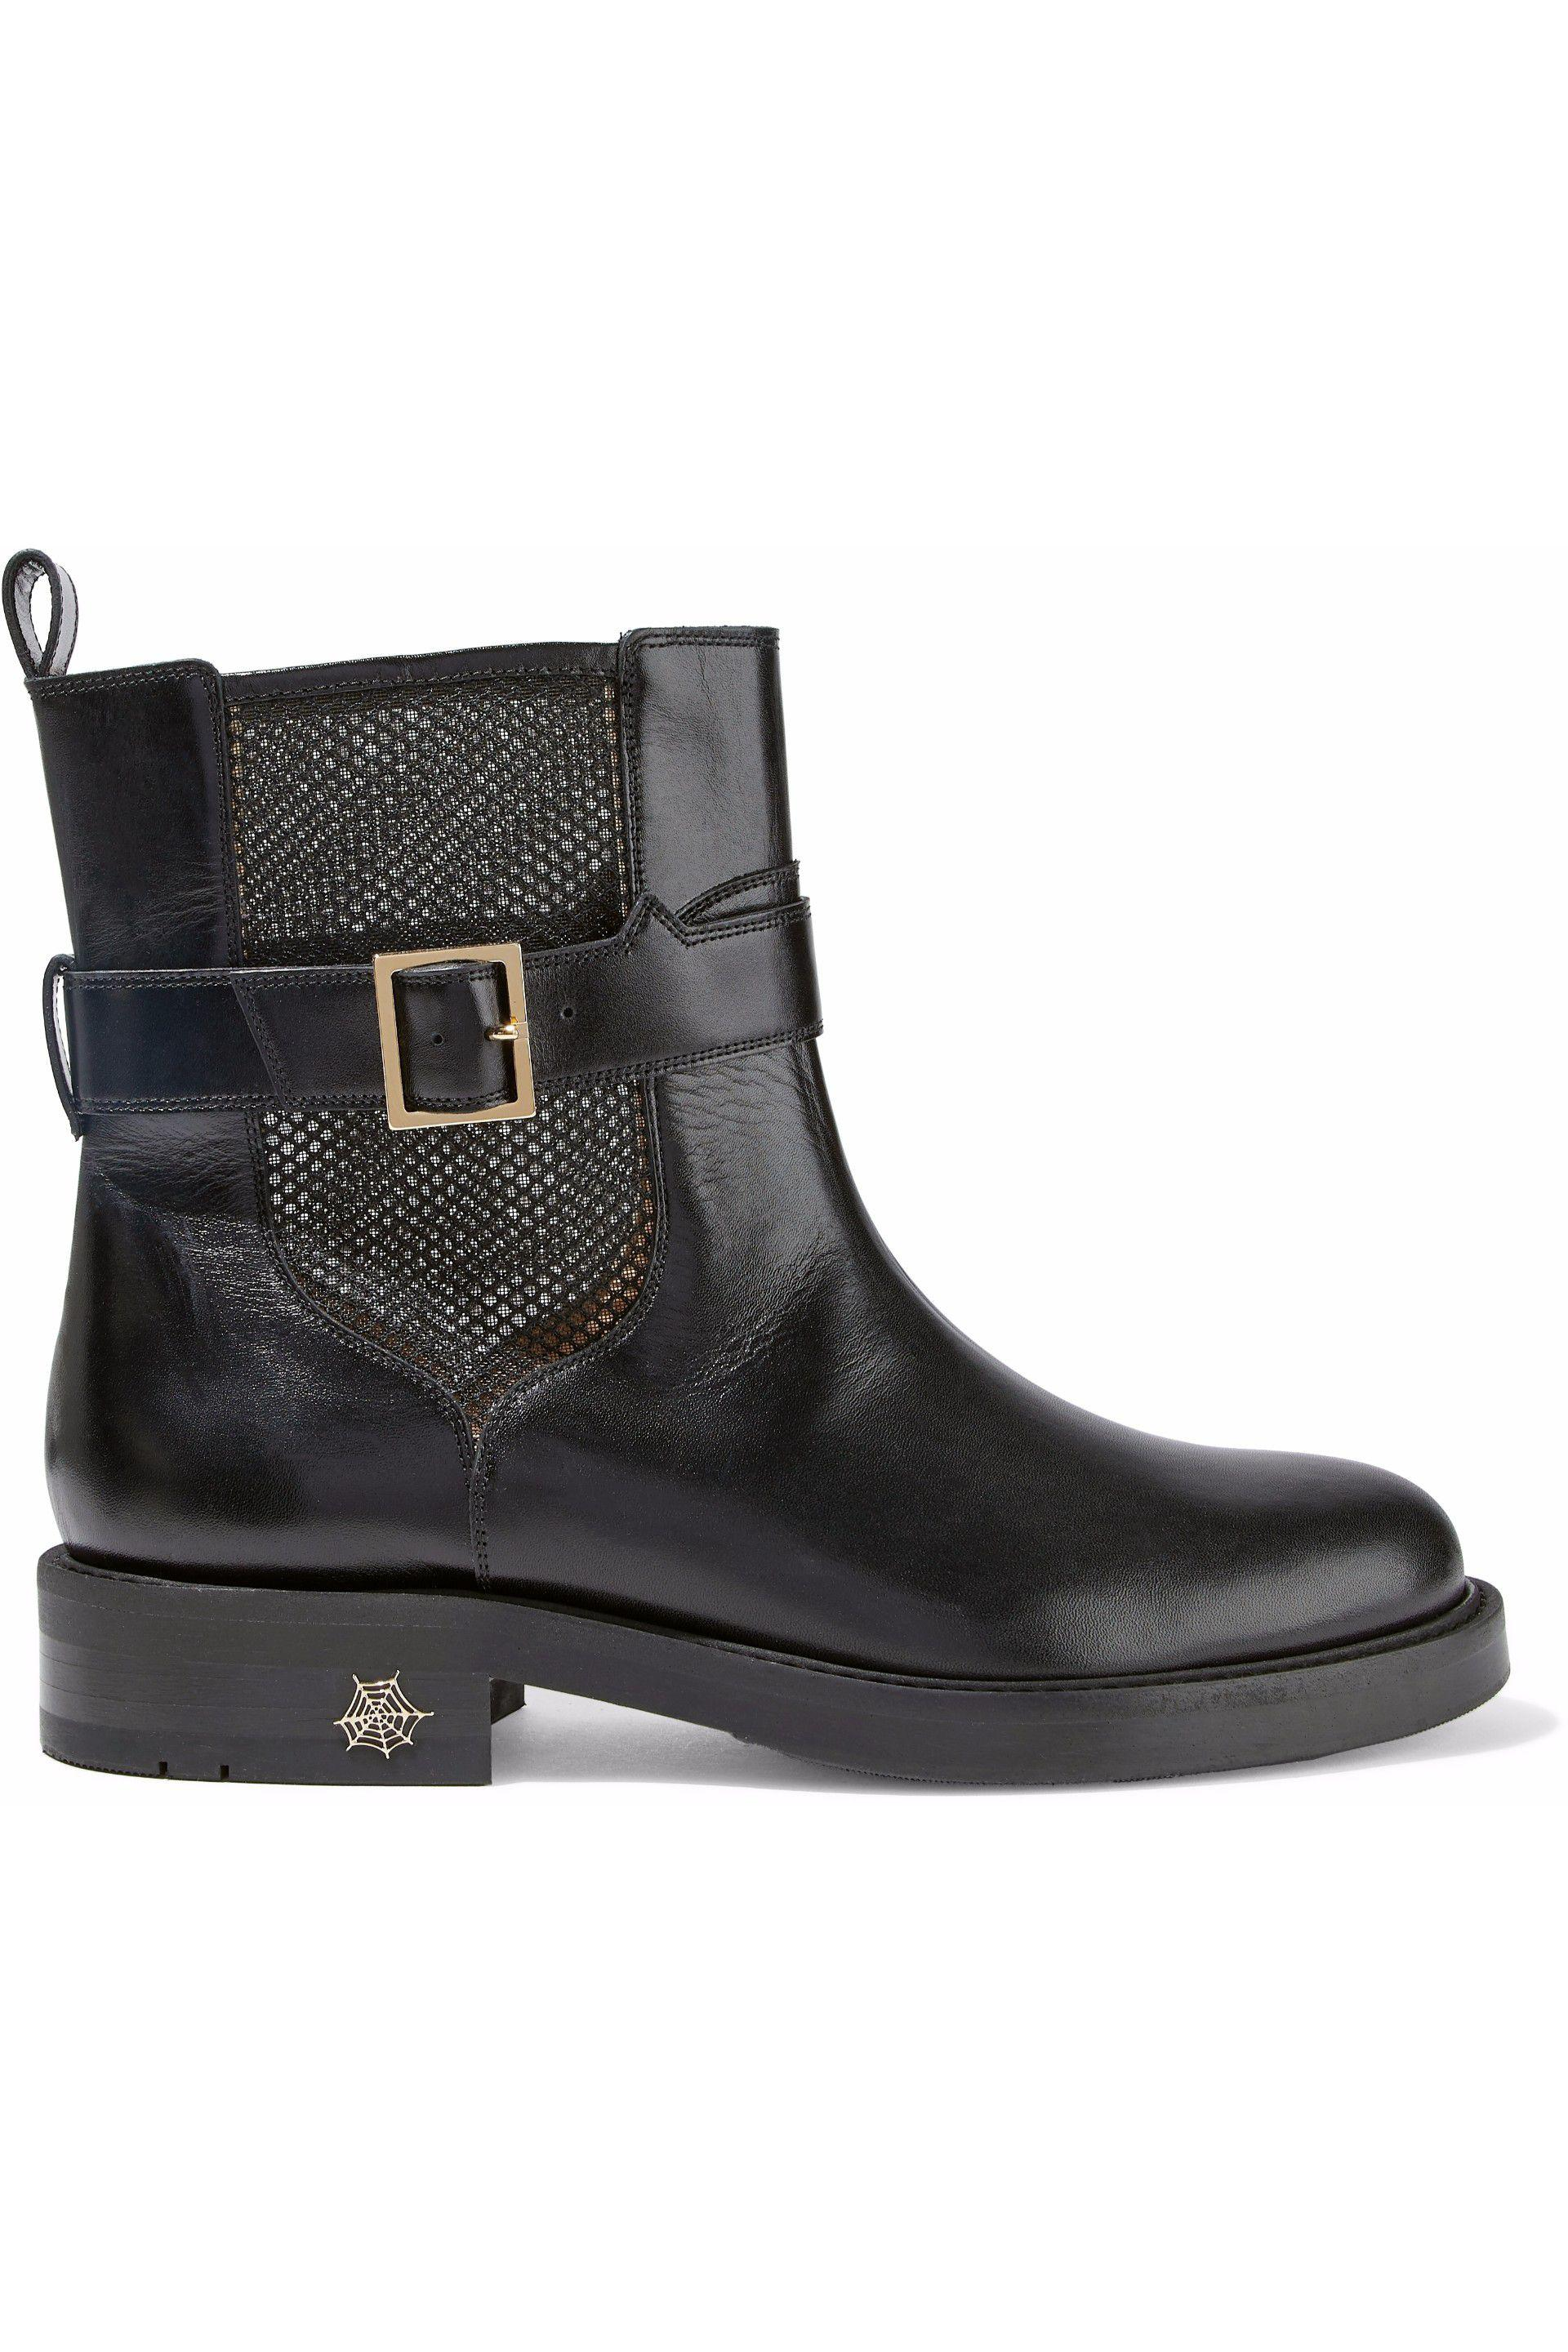 Charlotte Olympia Leather Buckled Boots